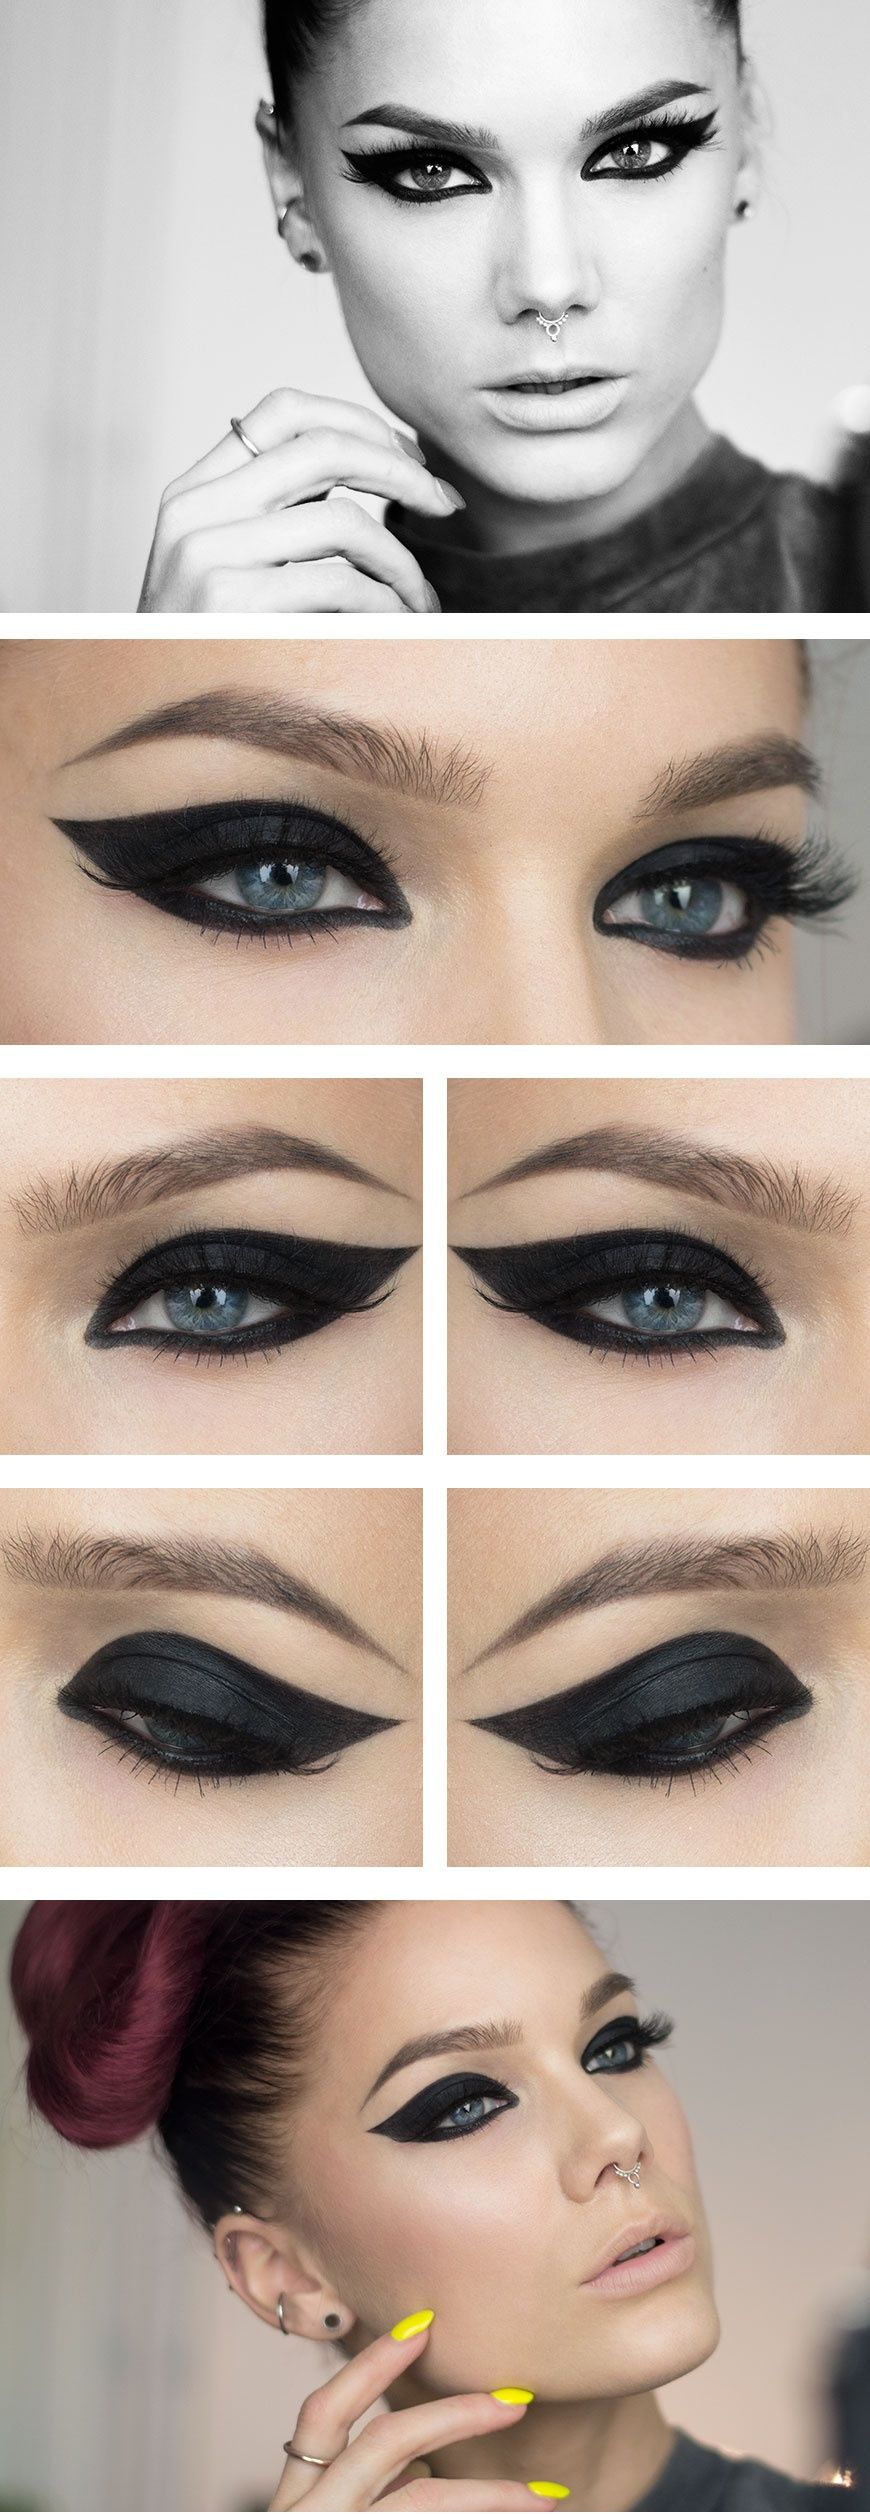 how to make eye black for sports